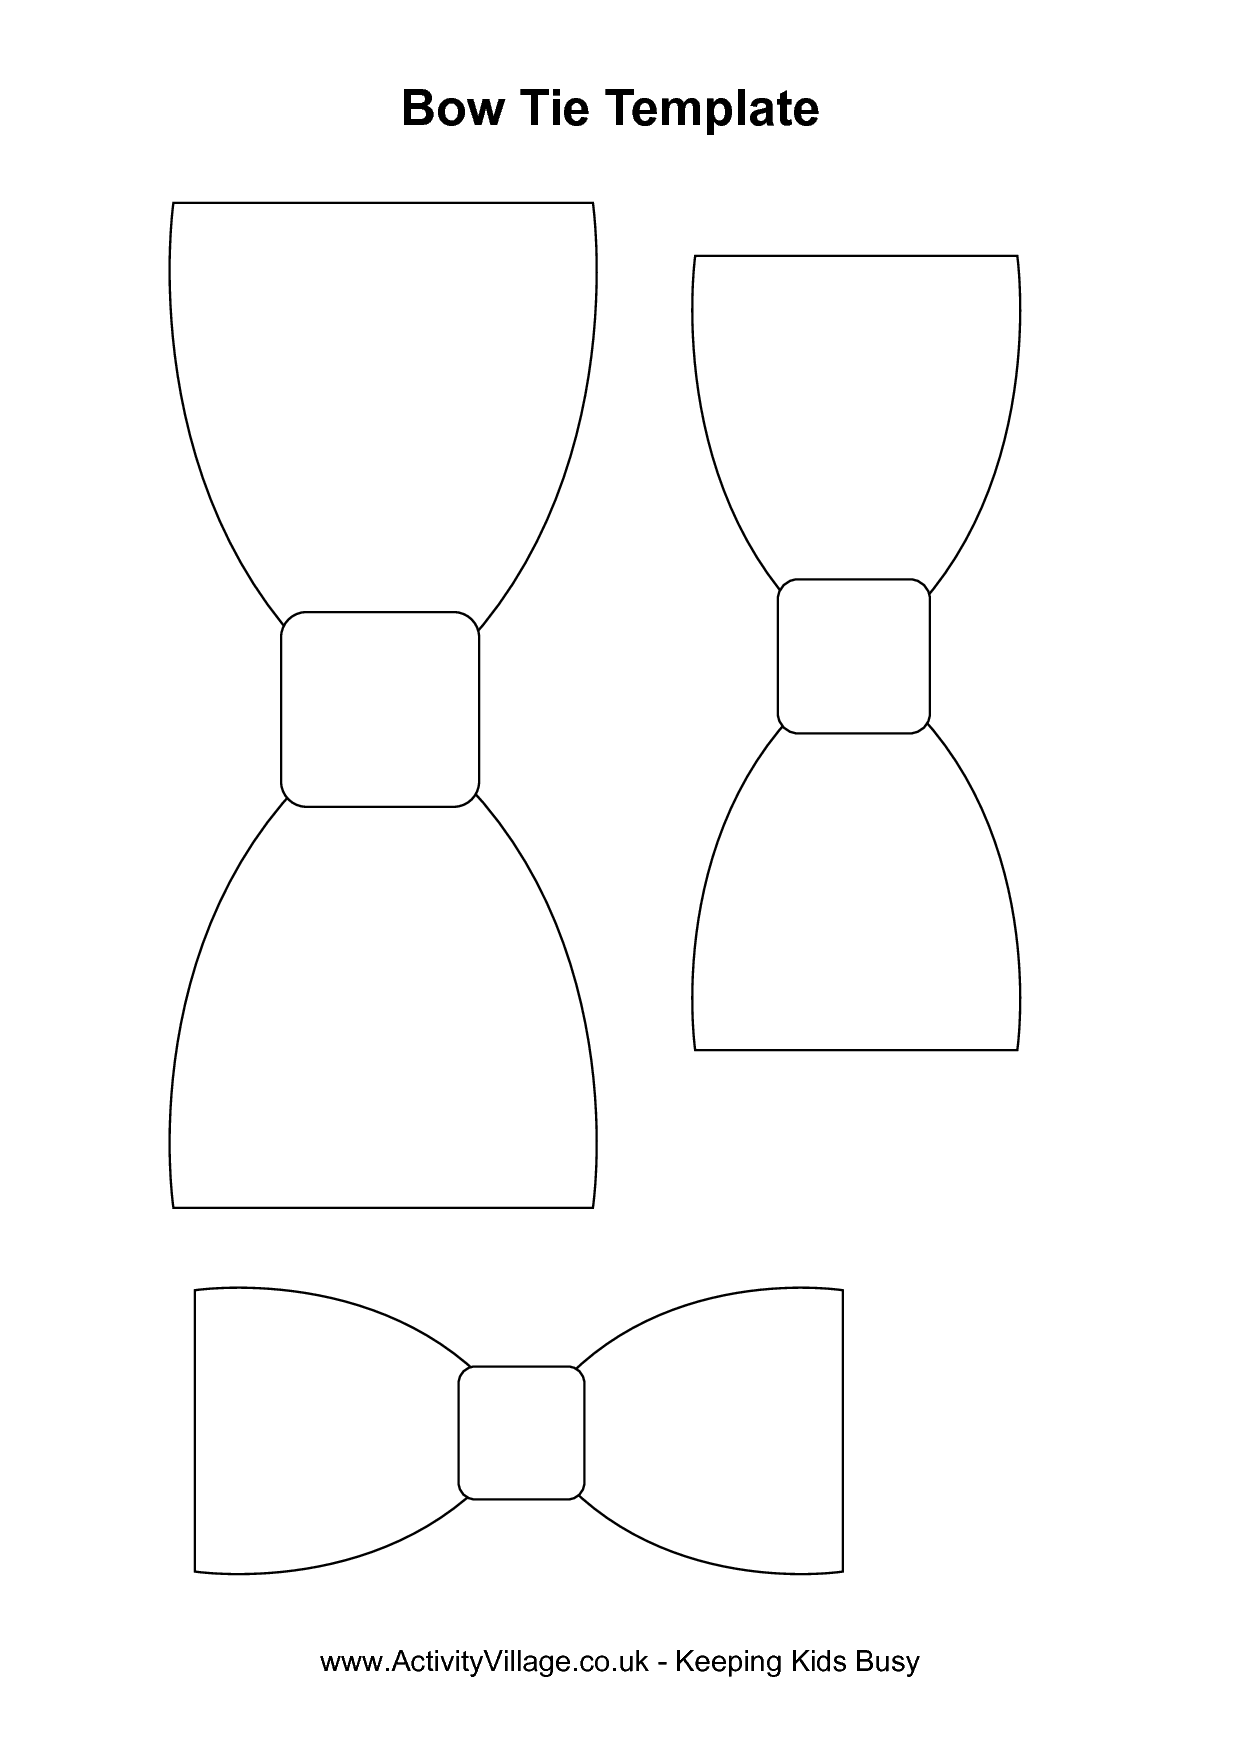 Bowtie Pattern Interesting Design Ideas